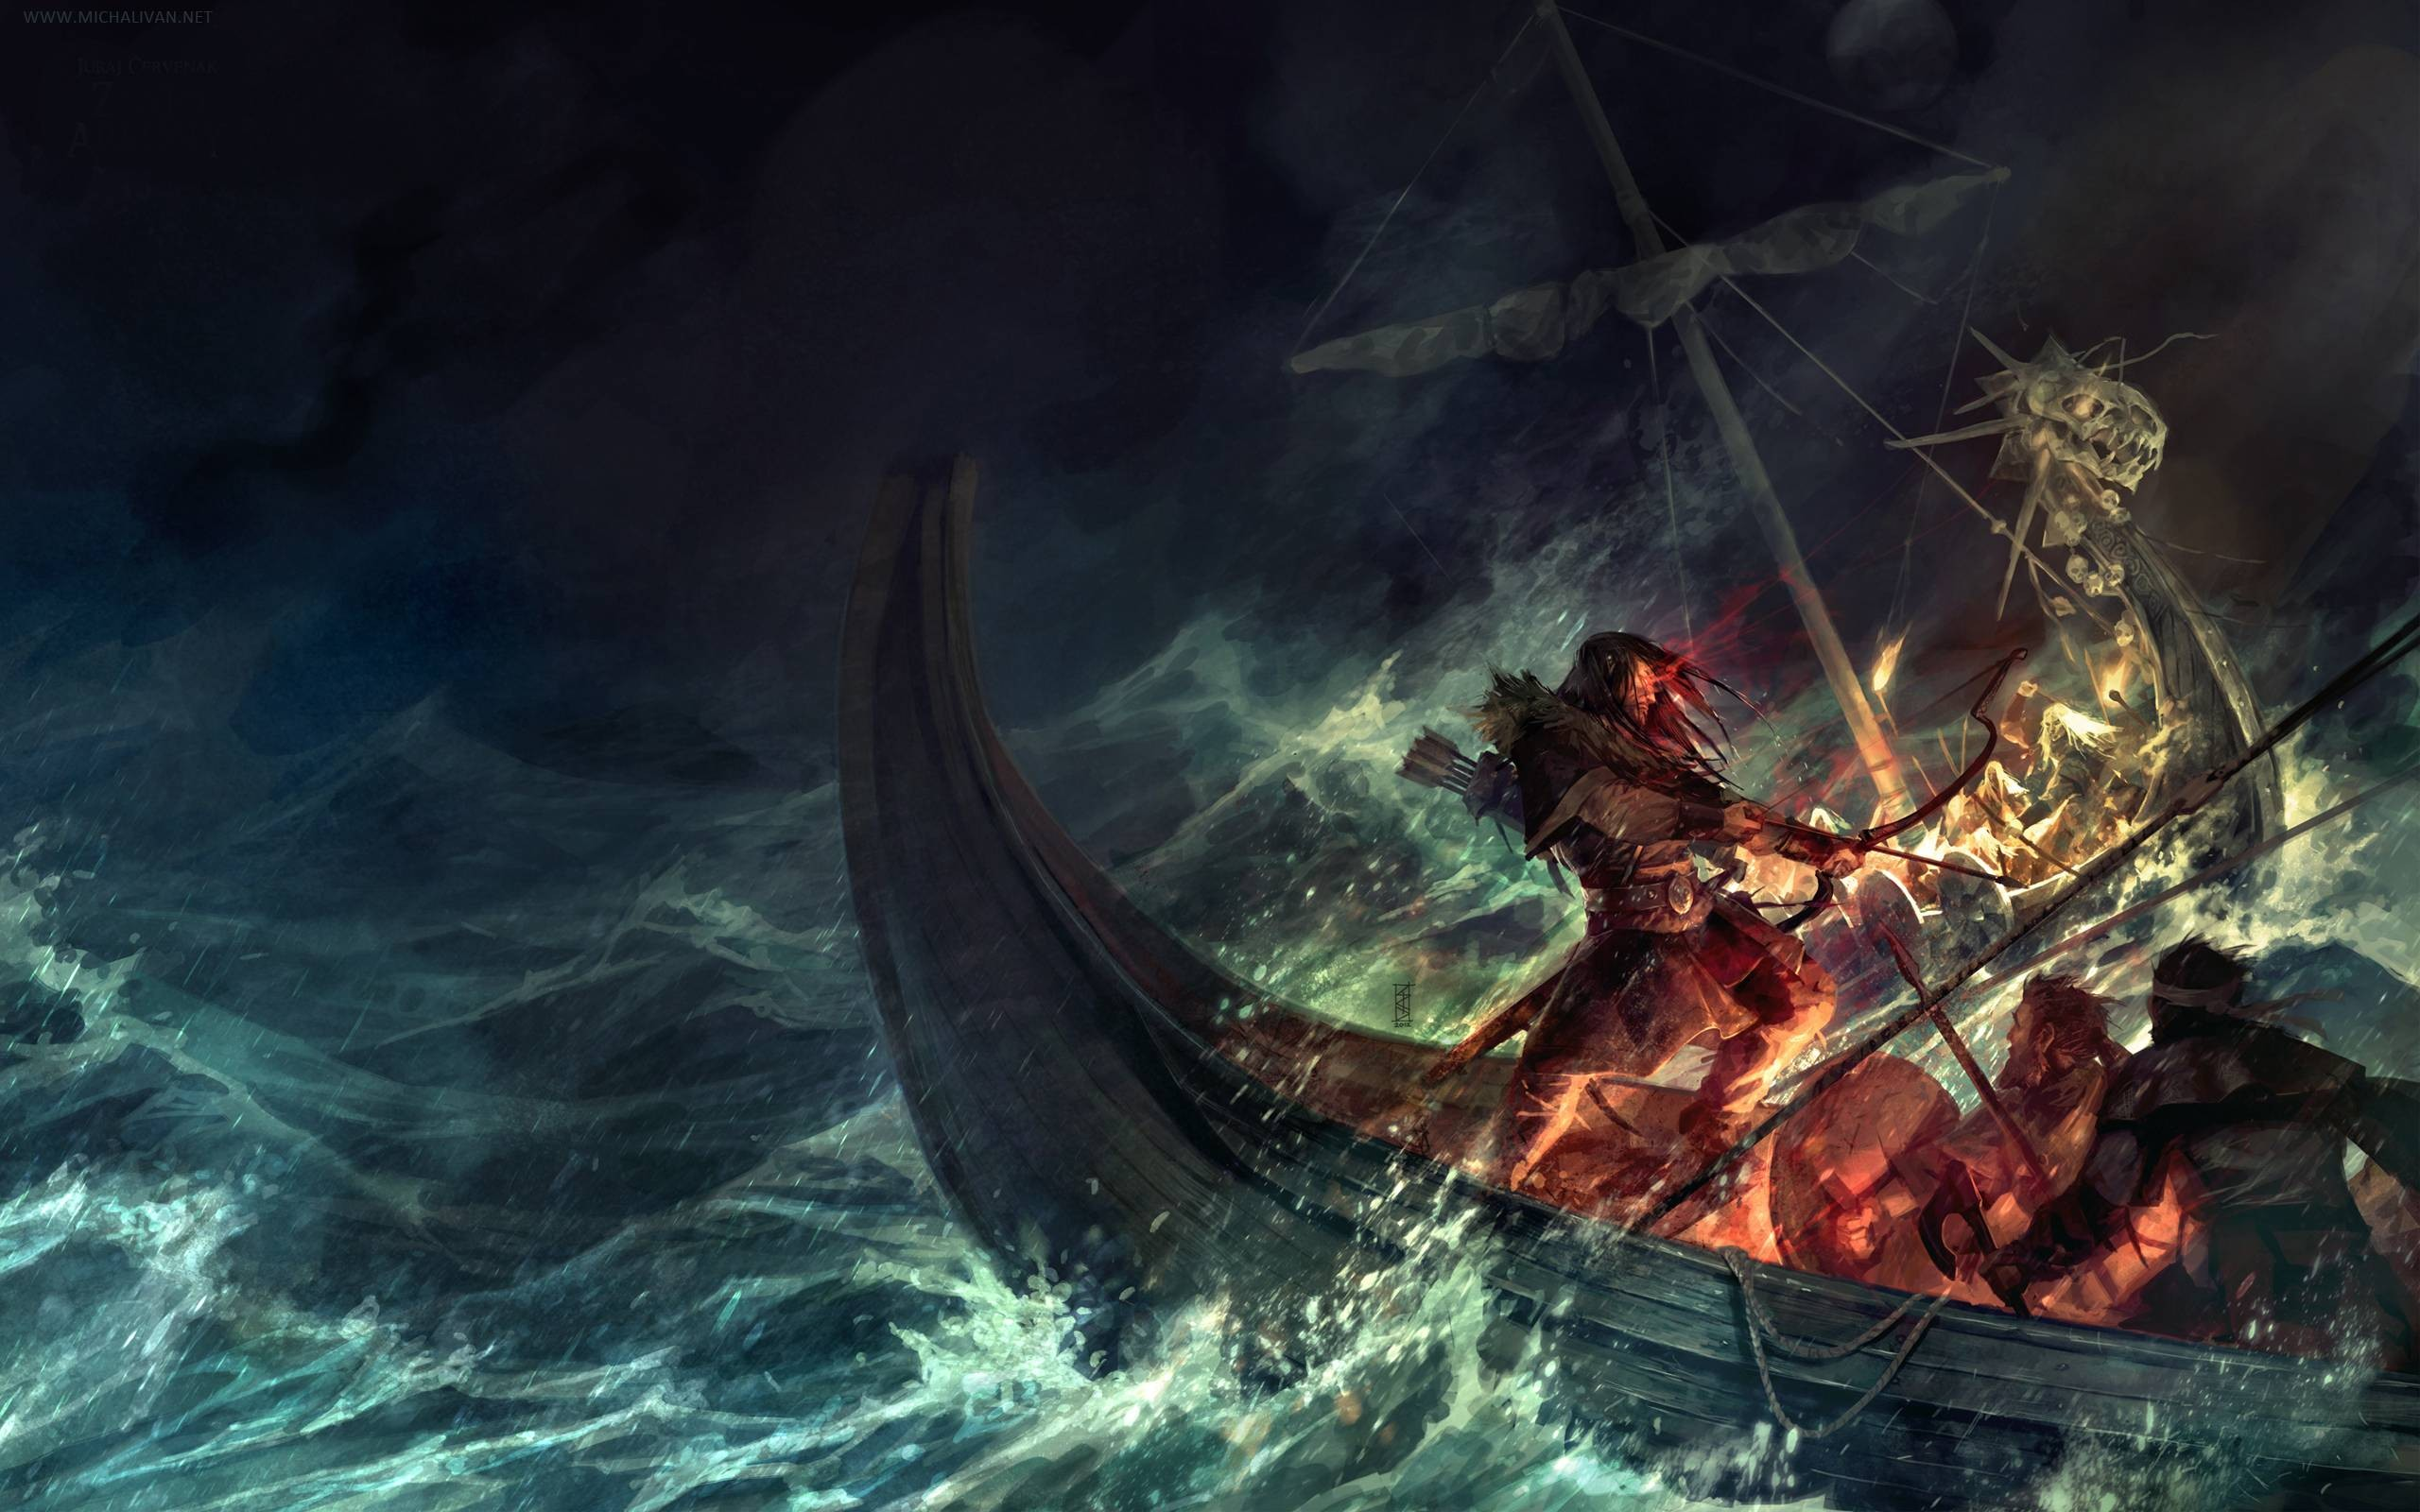 Norse Wallpaper 1 Download Free Awesome Wallpapers For Desktop And